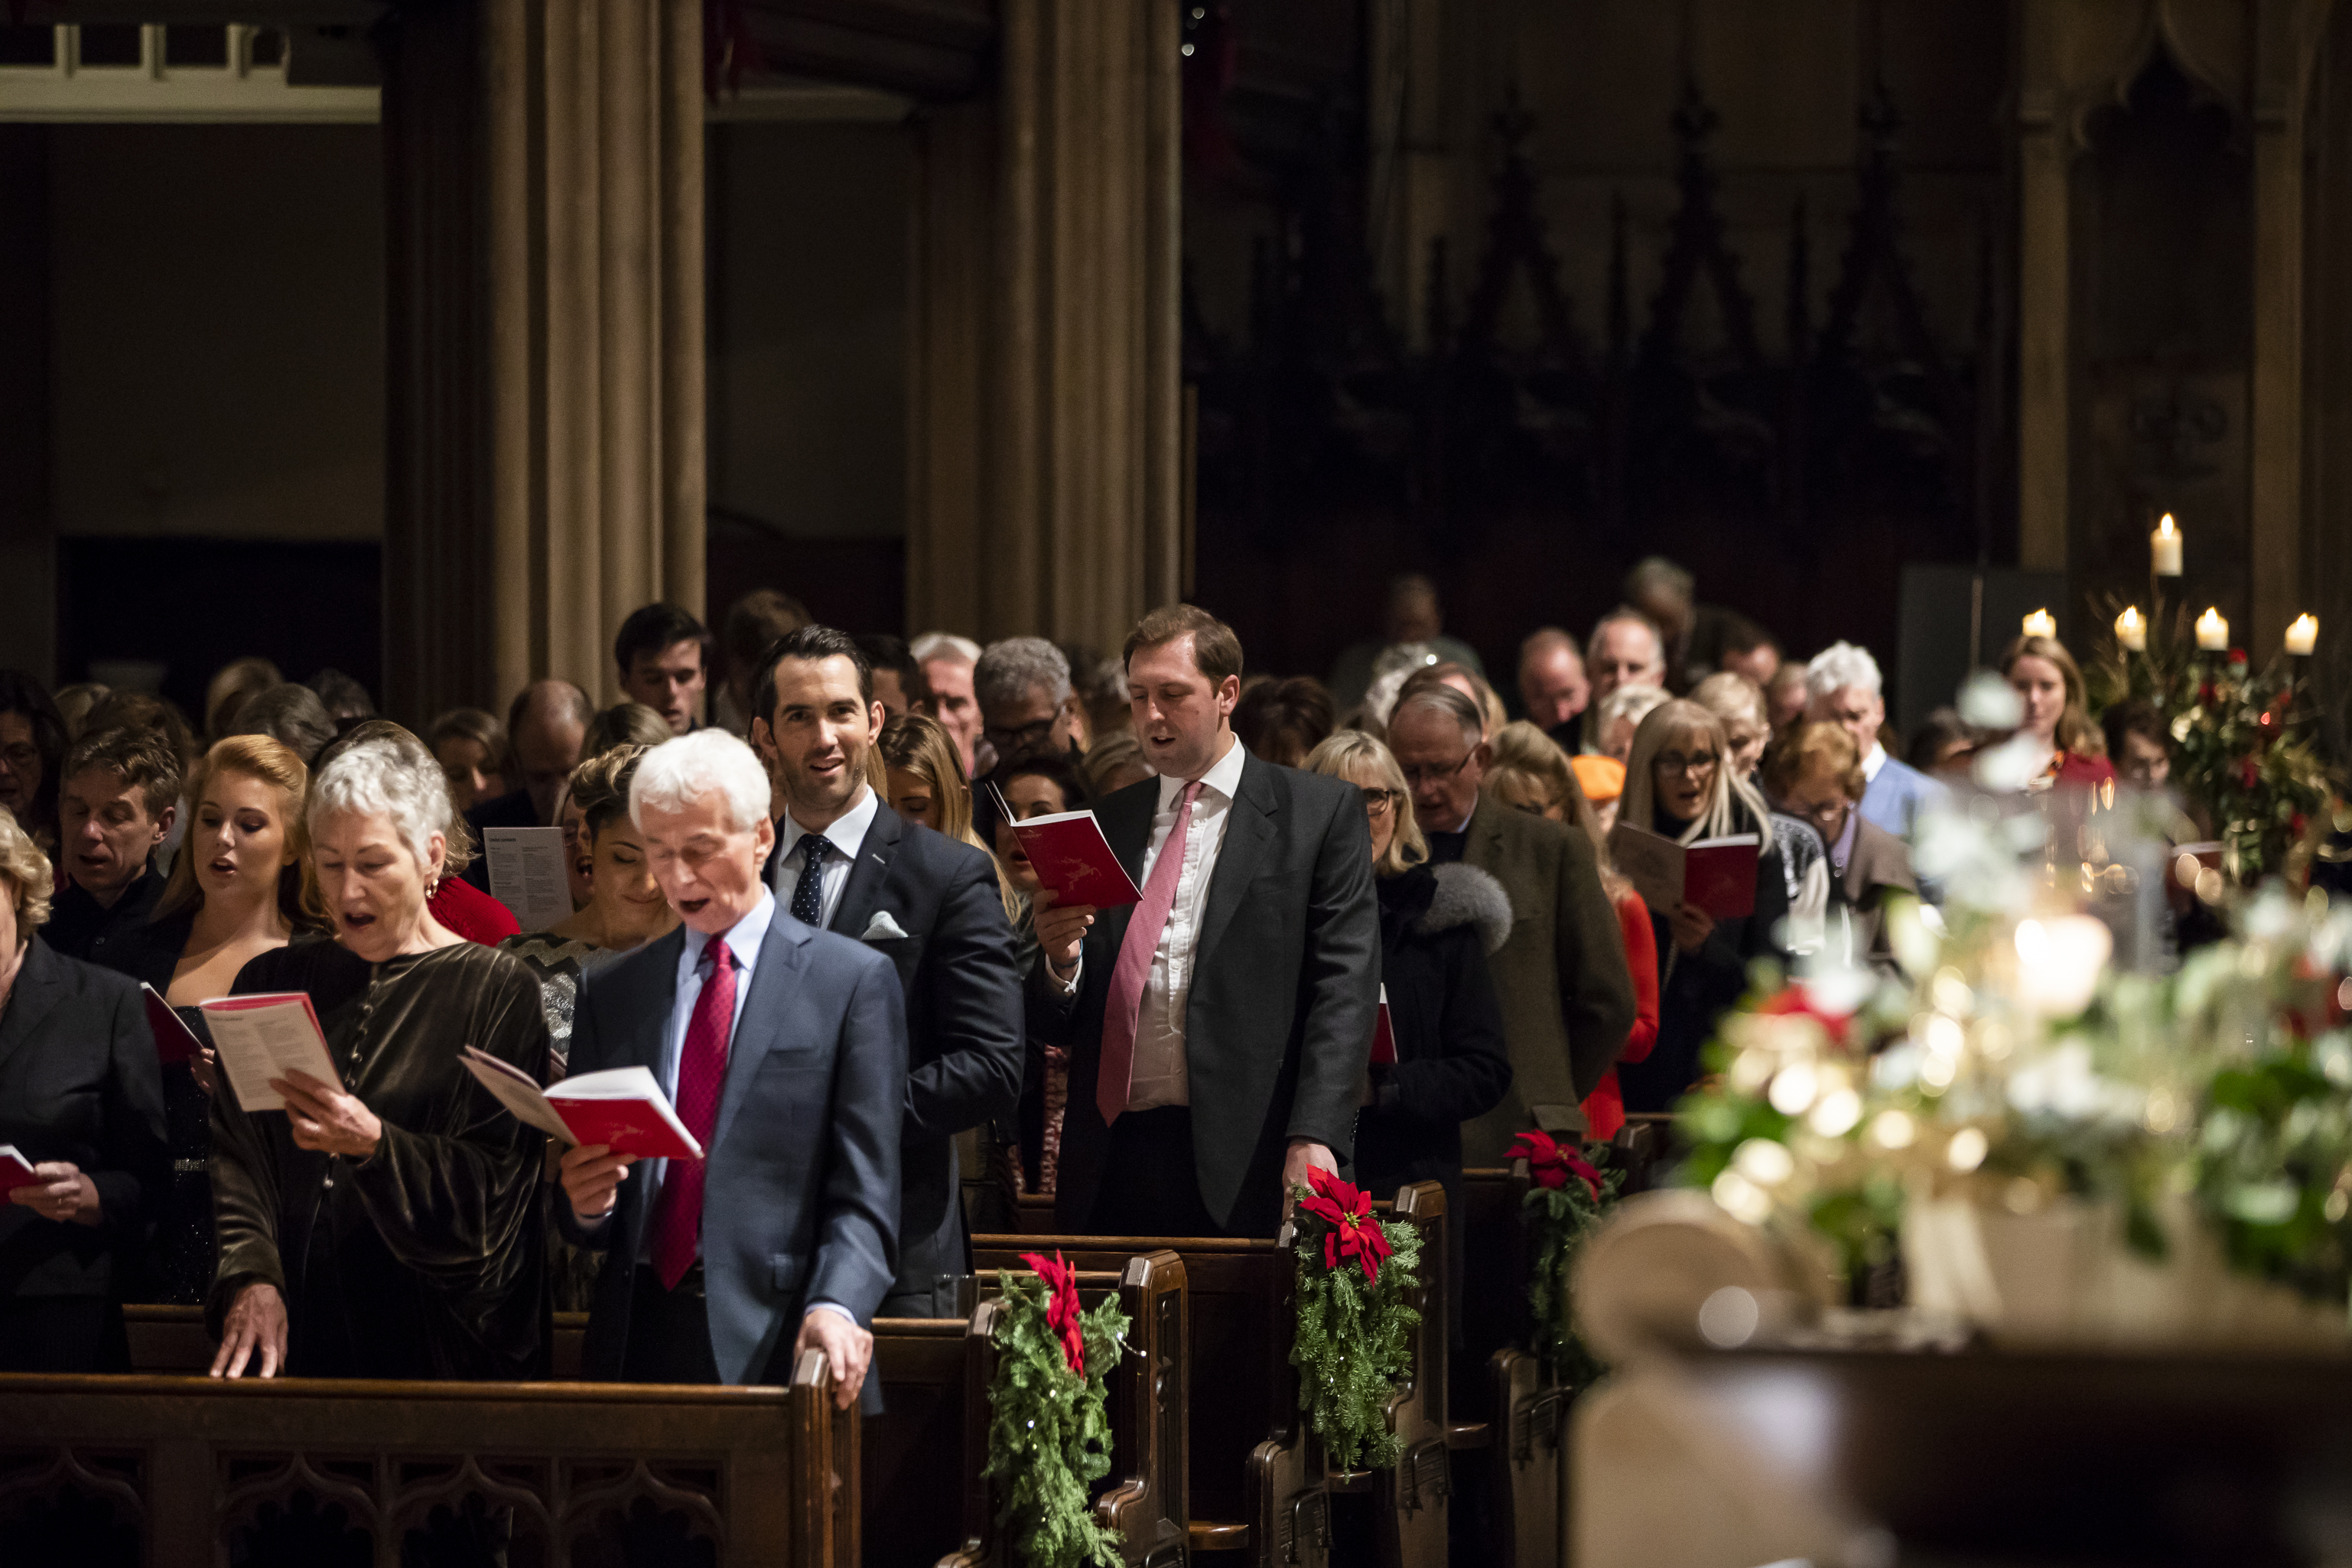 Stars come out for Hospice UK's Christmas carol service